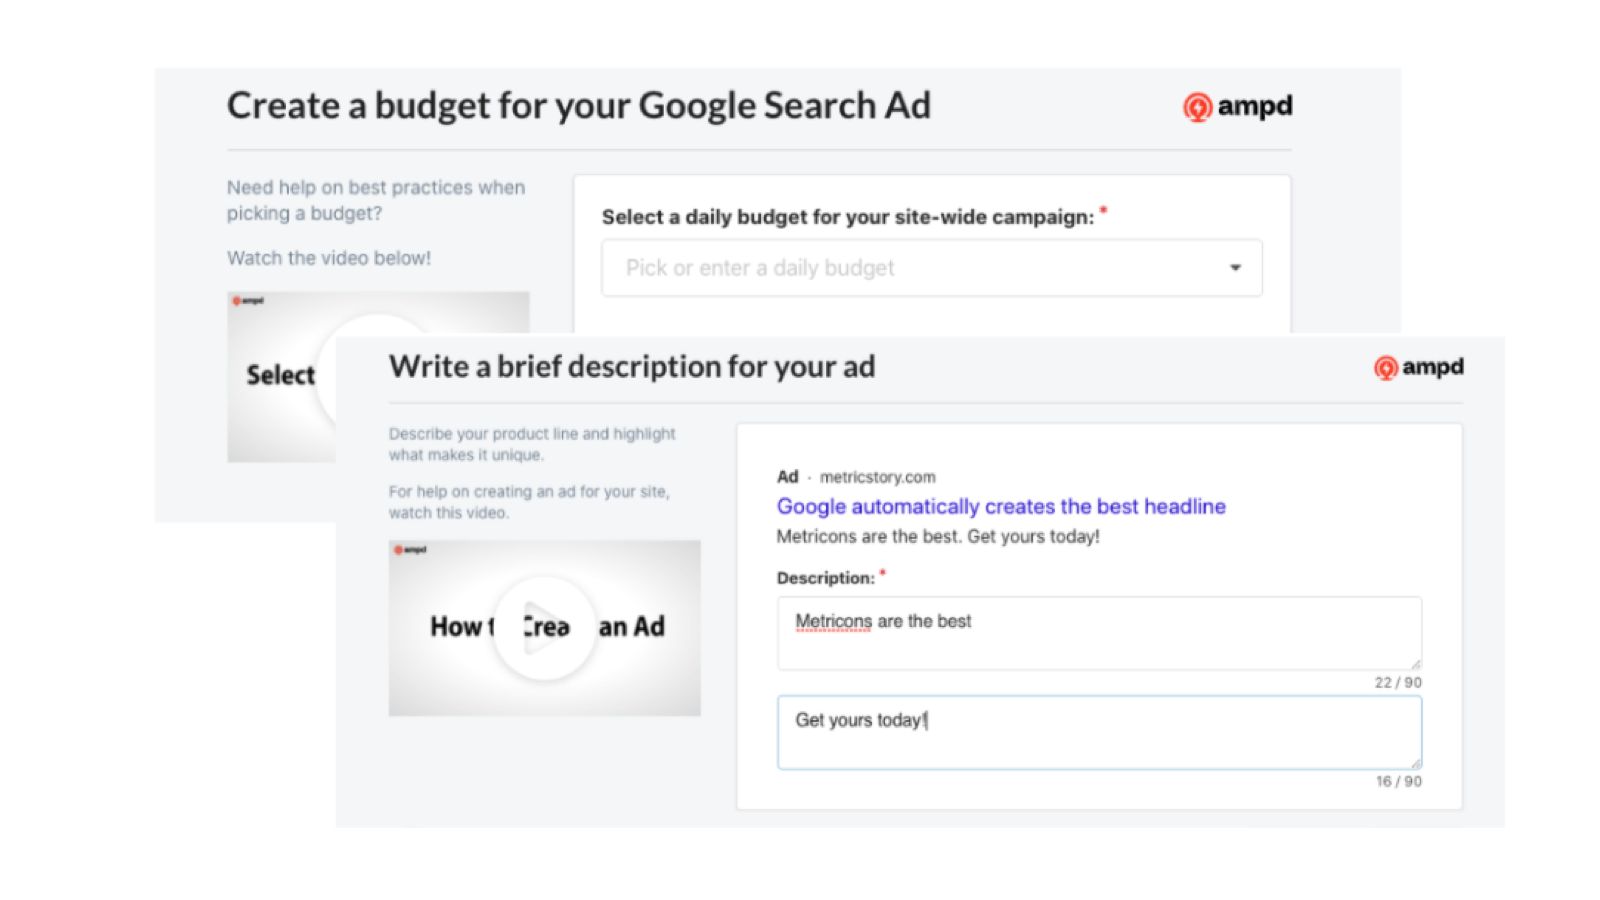 The fastest and simplest way to launch effective ads